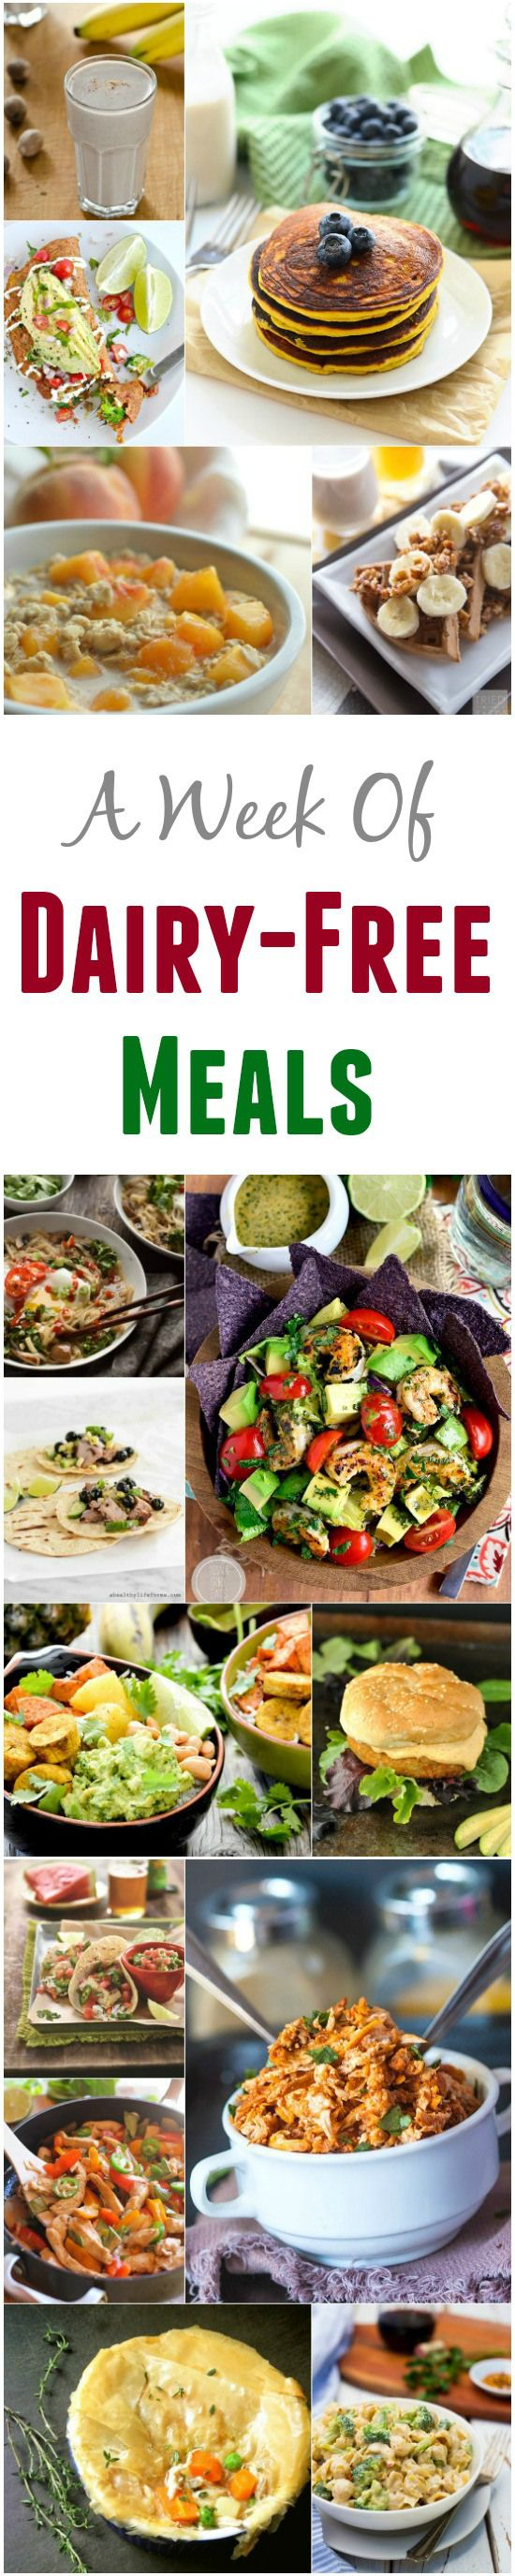 A Week Of Dairy-Free Meal Idea! Recipes for breakfast, lunch and dinner!